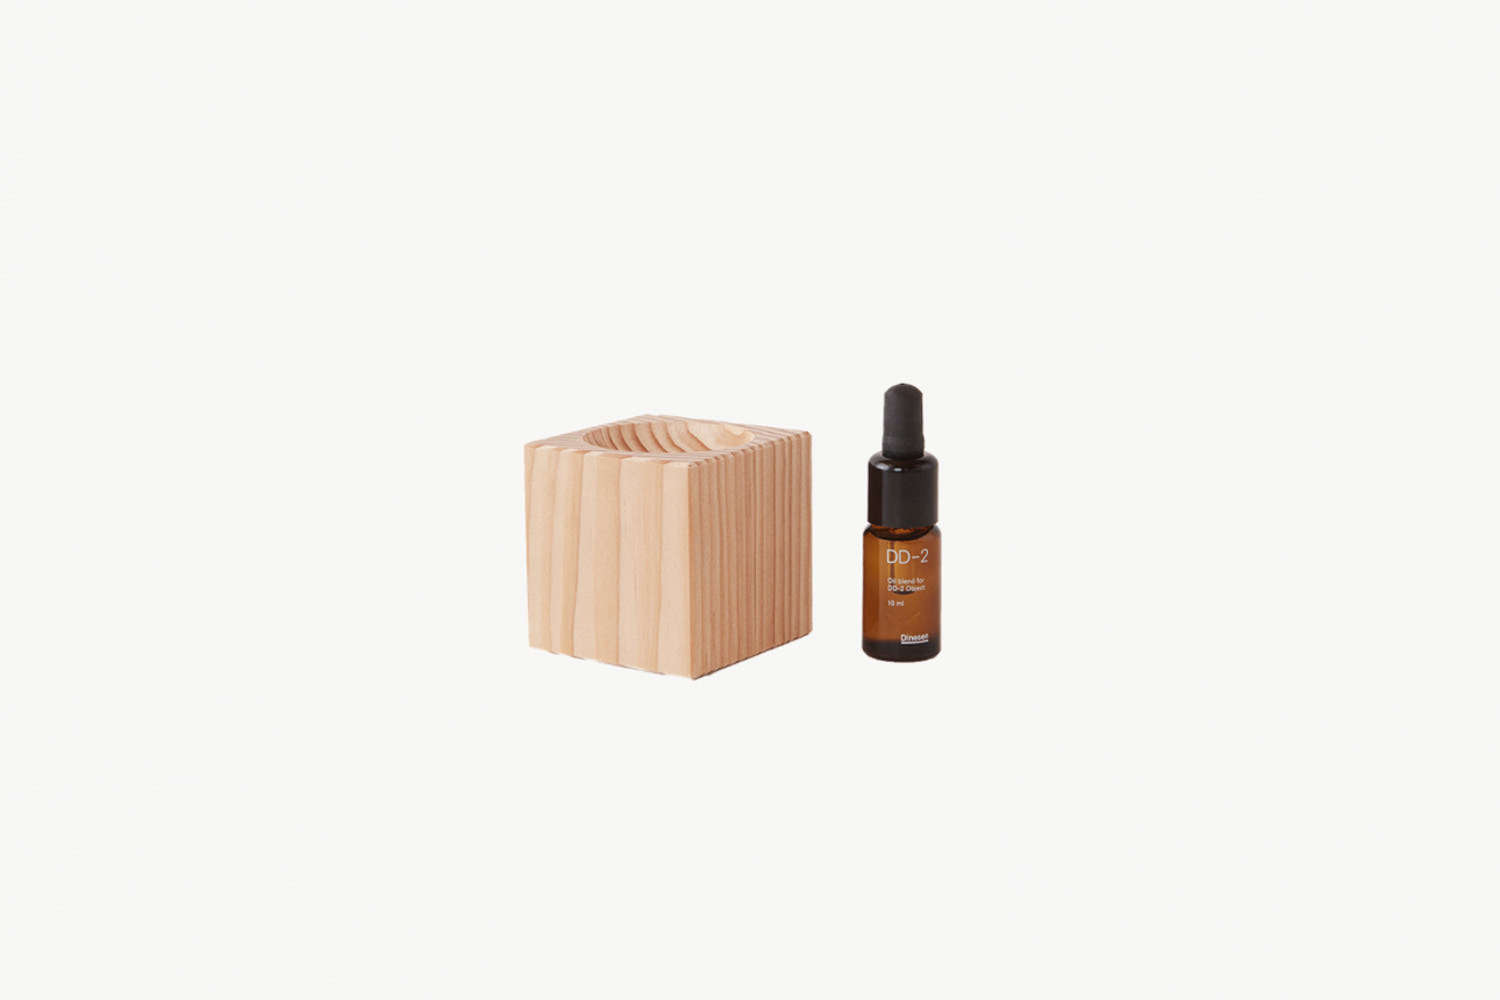 Remodelista Gift Guide 2020 Gifts for the Home Fragrance Snob We recently learned about the new DD \2 Oil Blend Set from our all time favorite wood floor purveyors, Danish company Dinesen. The set, made up of the oil blend and a Douglas fir object for dripping the oil onto, was created with artist and researcher Sissel Tolaas and the architecture firm Pneuma.